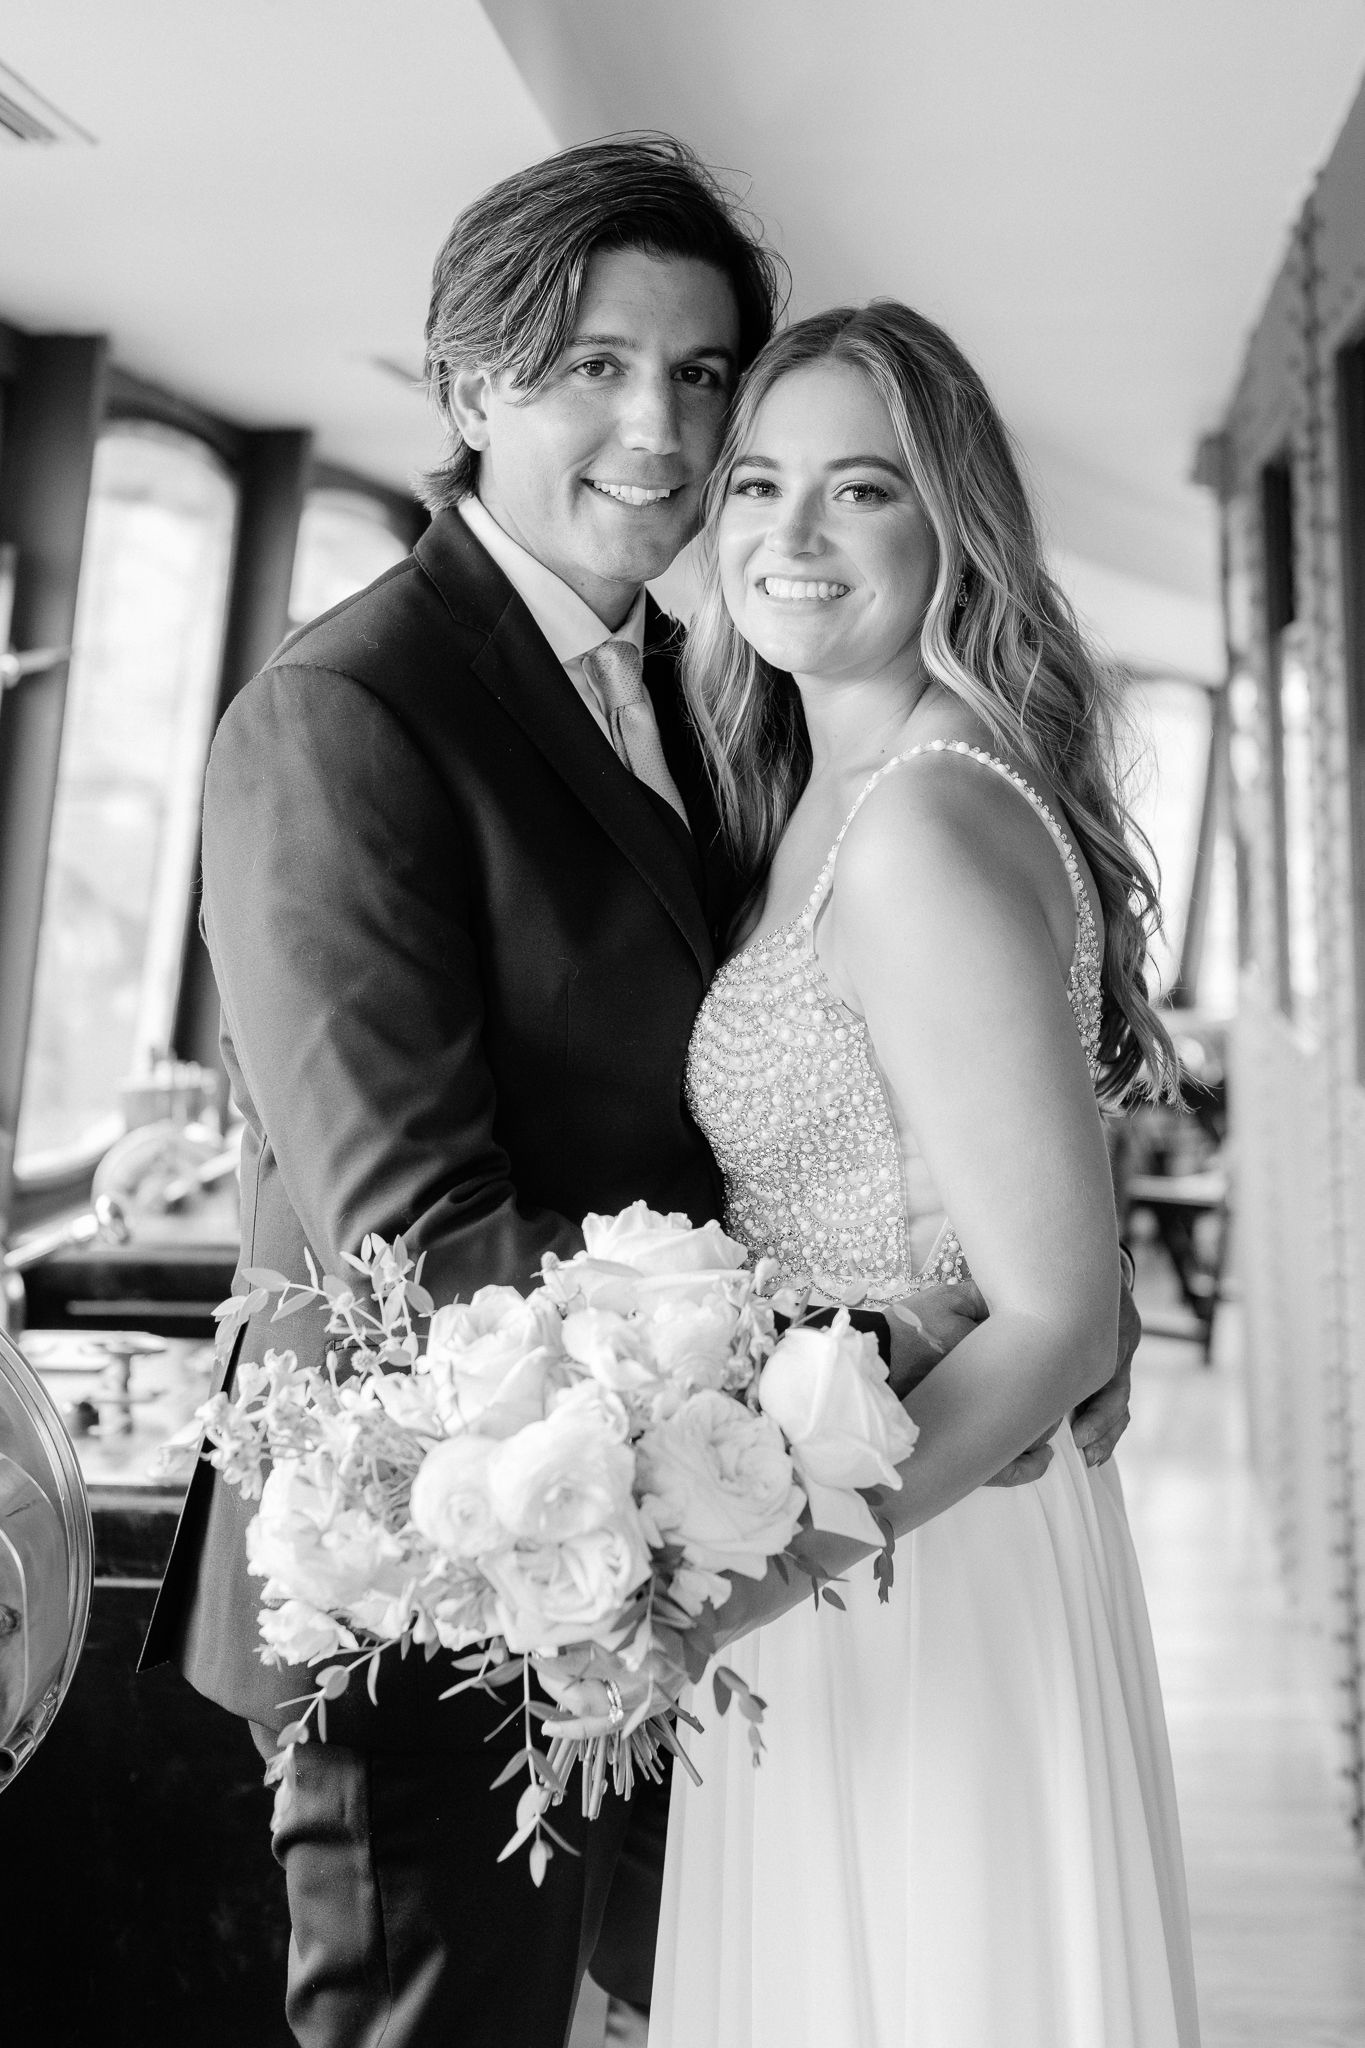 Chicago Microwedding – Chicago Yacht Club